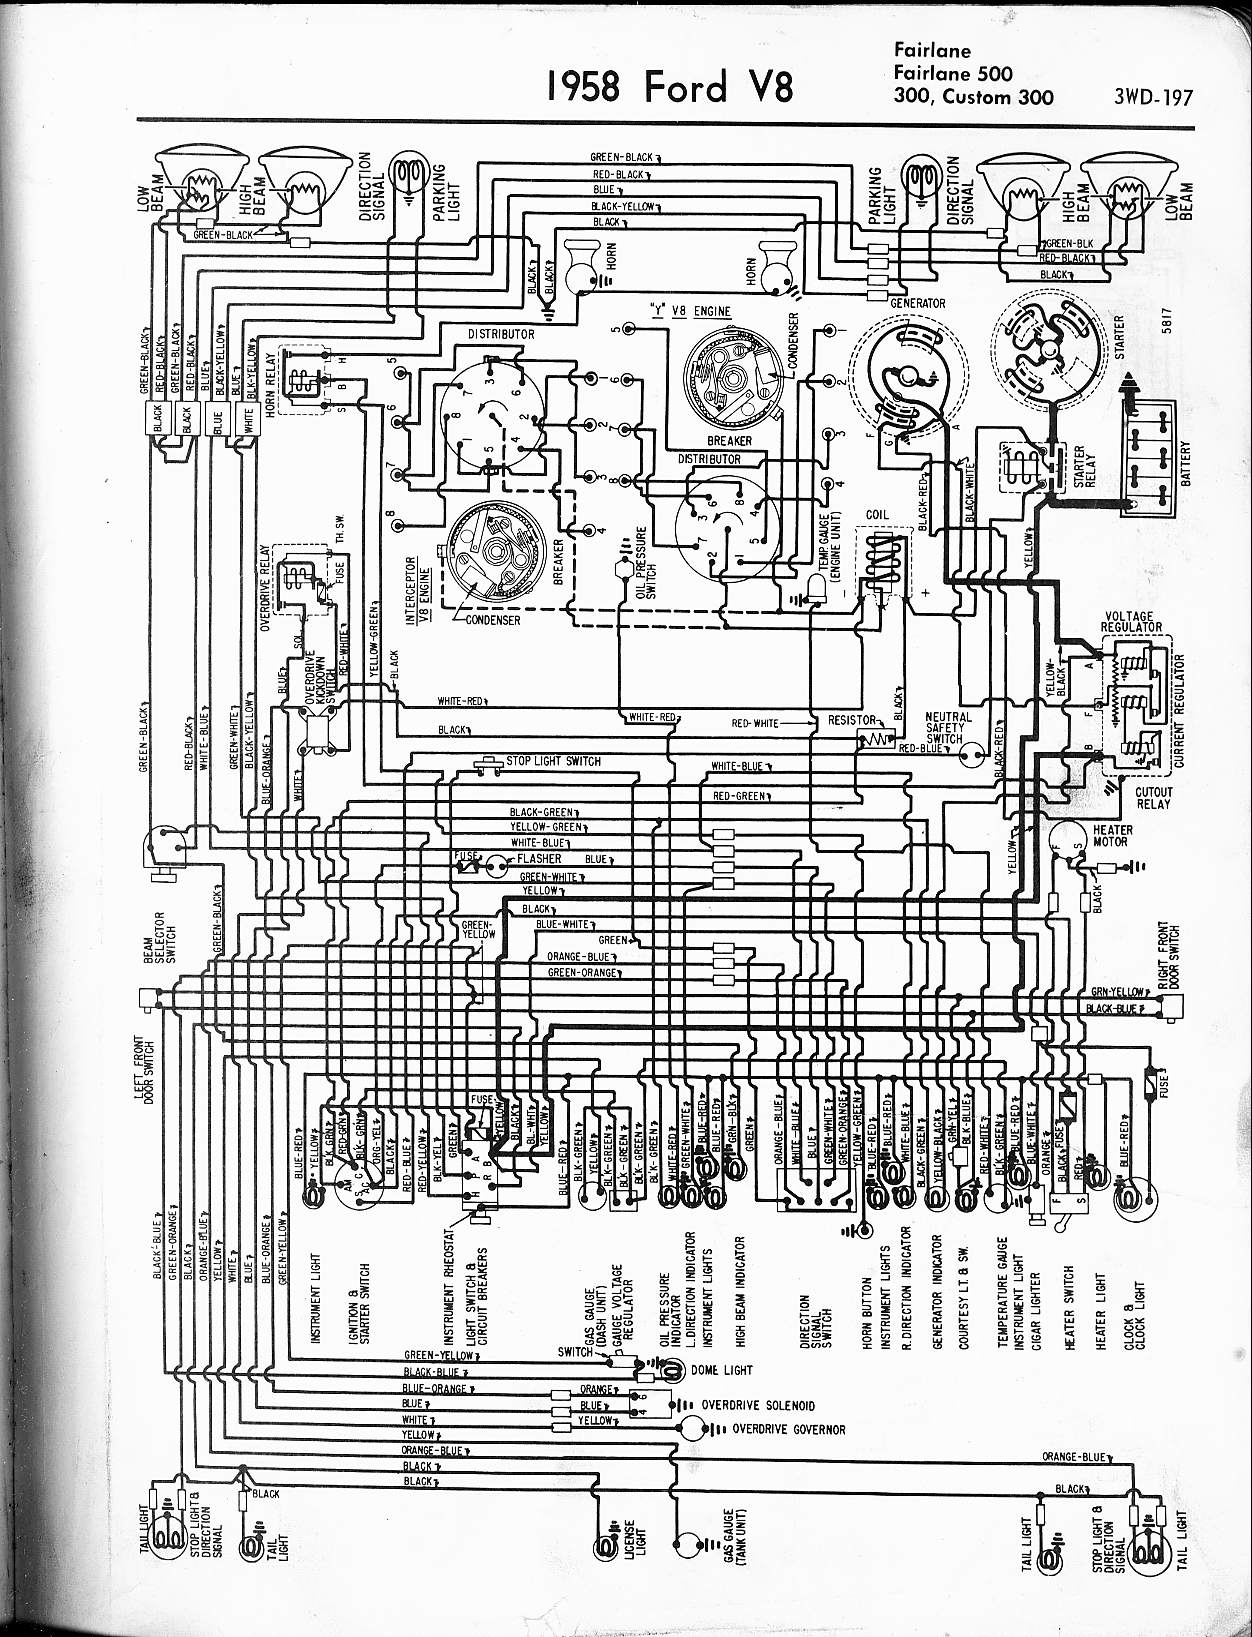 hight resolution of 1956 ford fairlane wiring diagram simple wiring diagram rh david huggett co uk